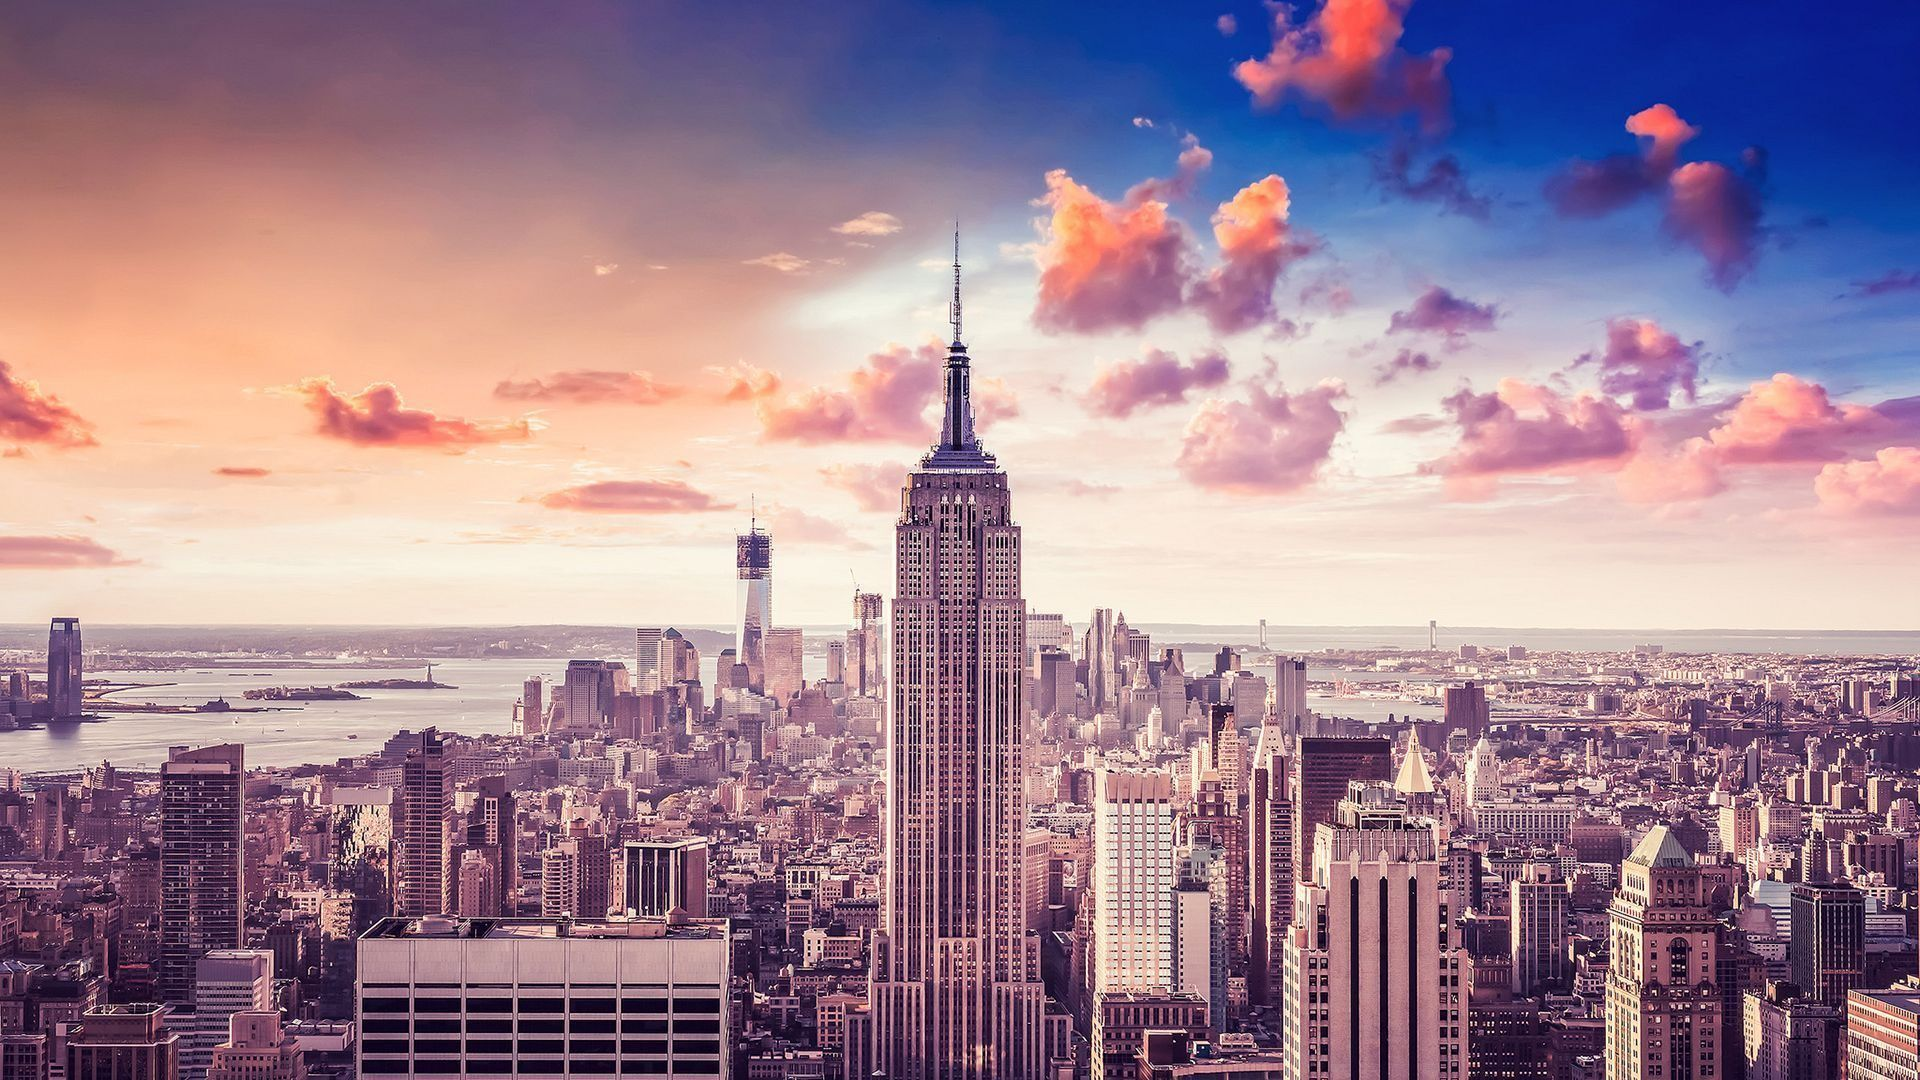 new york wallpapers hd, cool new york wallpapers